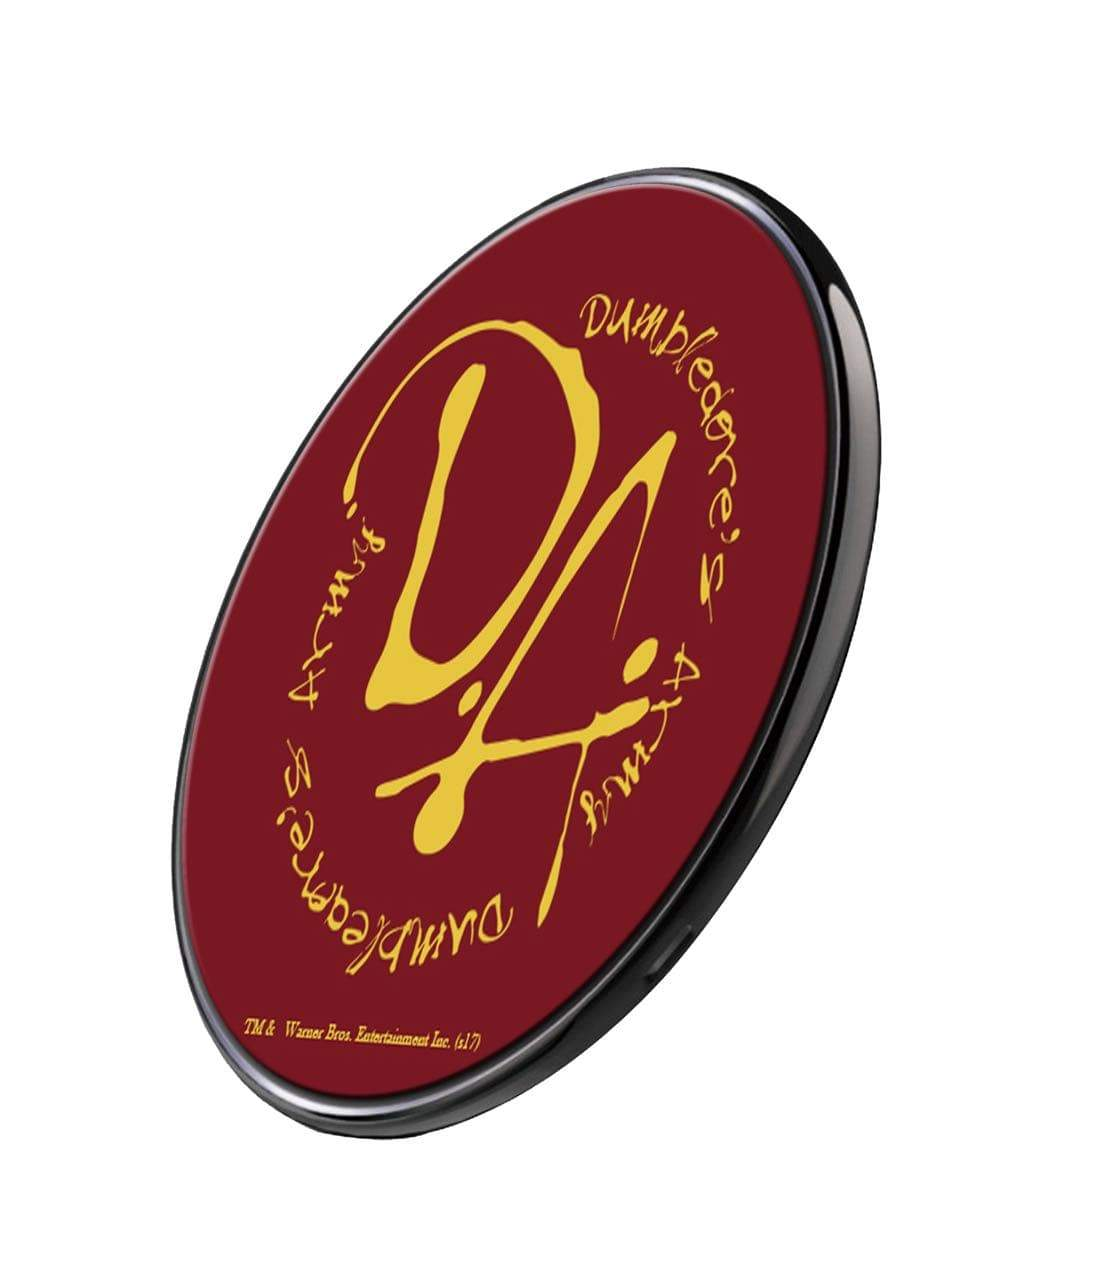 Dumbledores Army Wireless Charger by Macmerise -Macmerise - India - www.superherotoystore.com